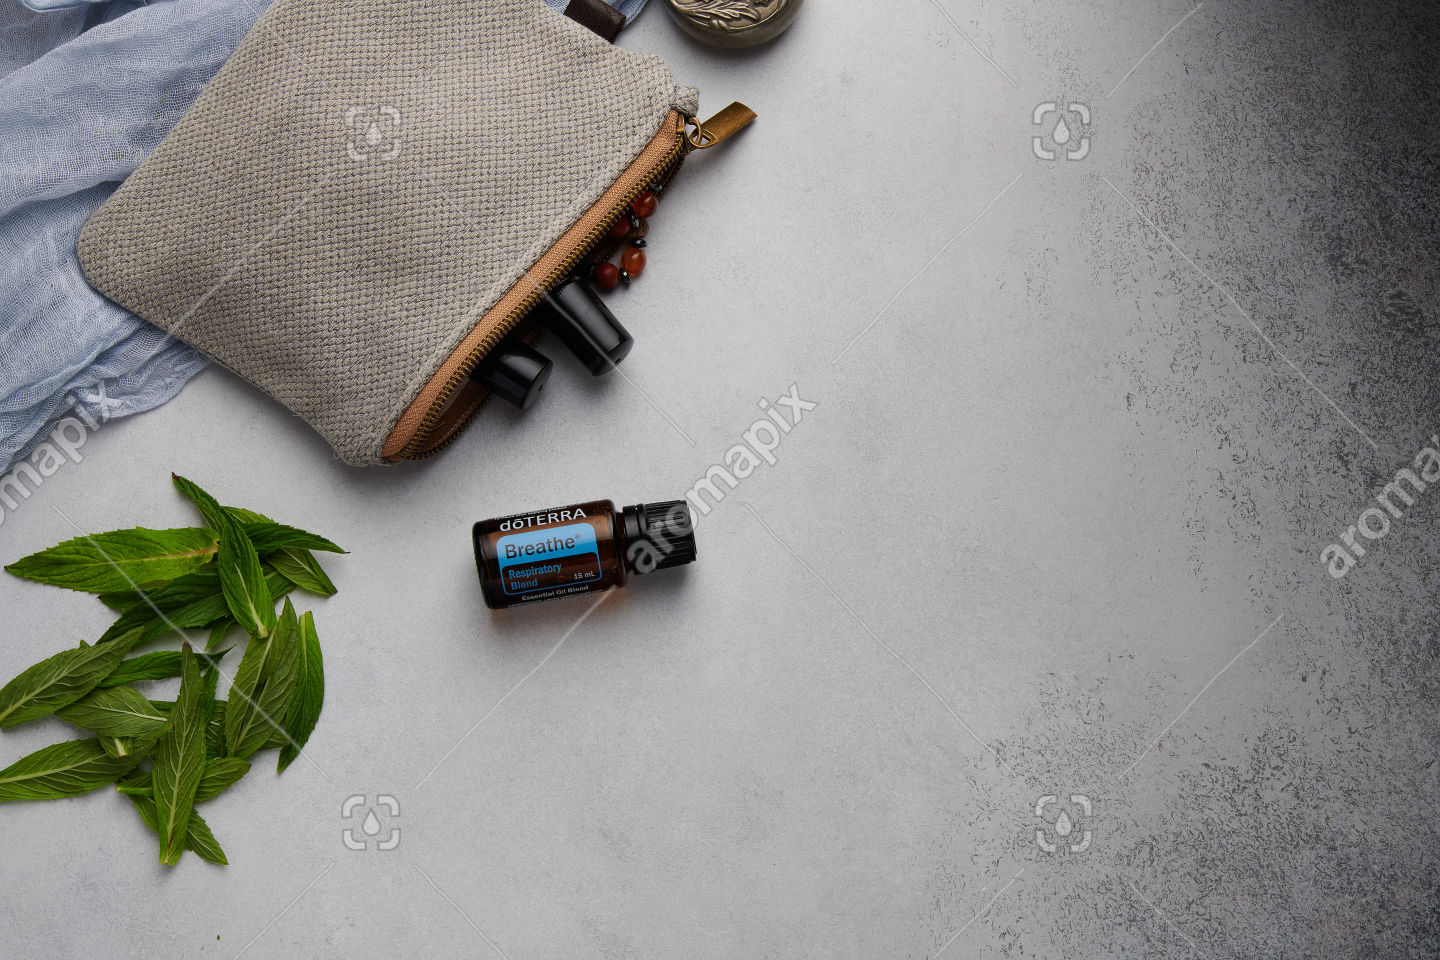 doTERRA Breathe with mint leaves on white